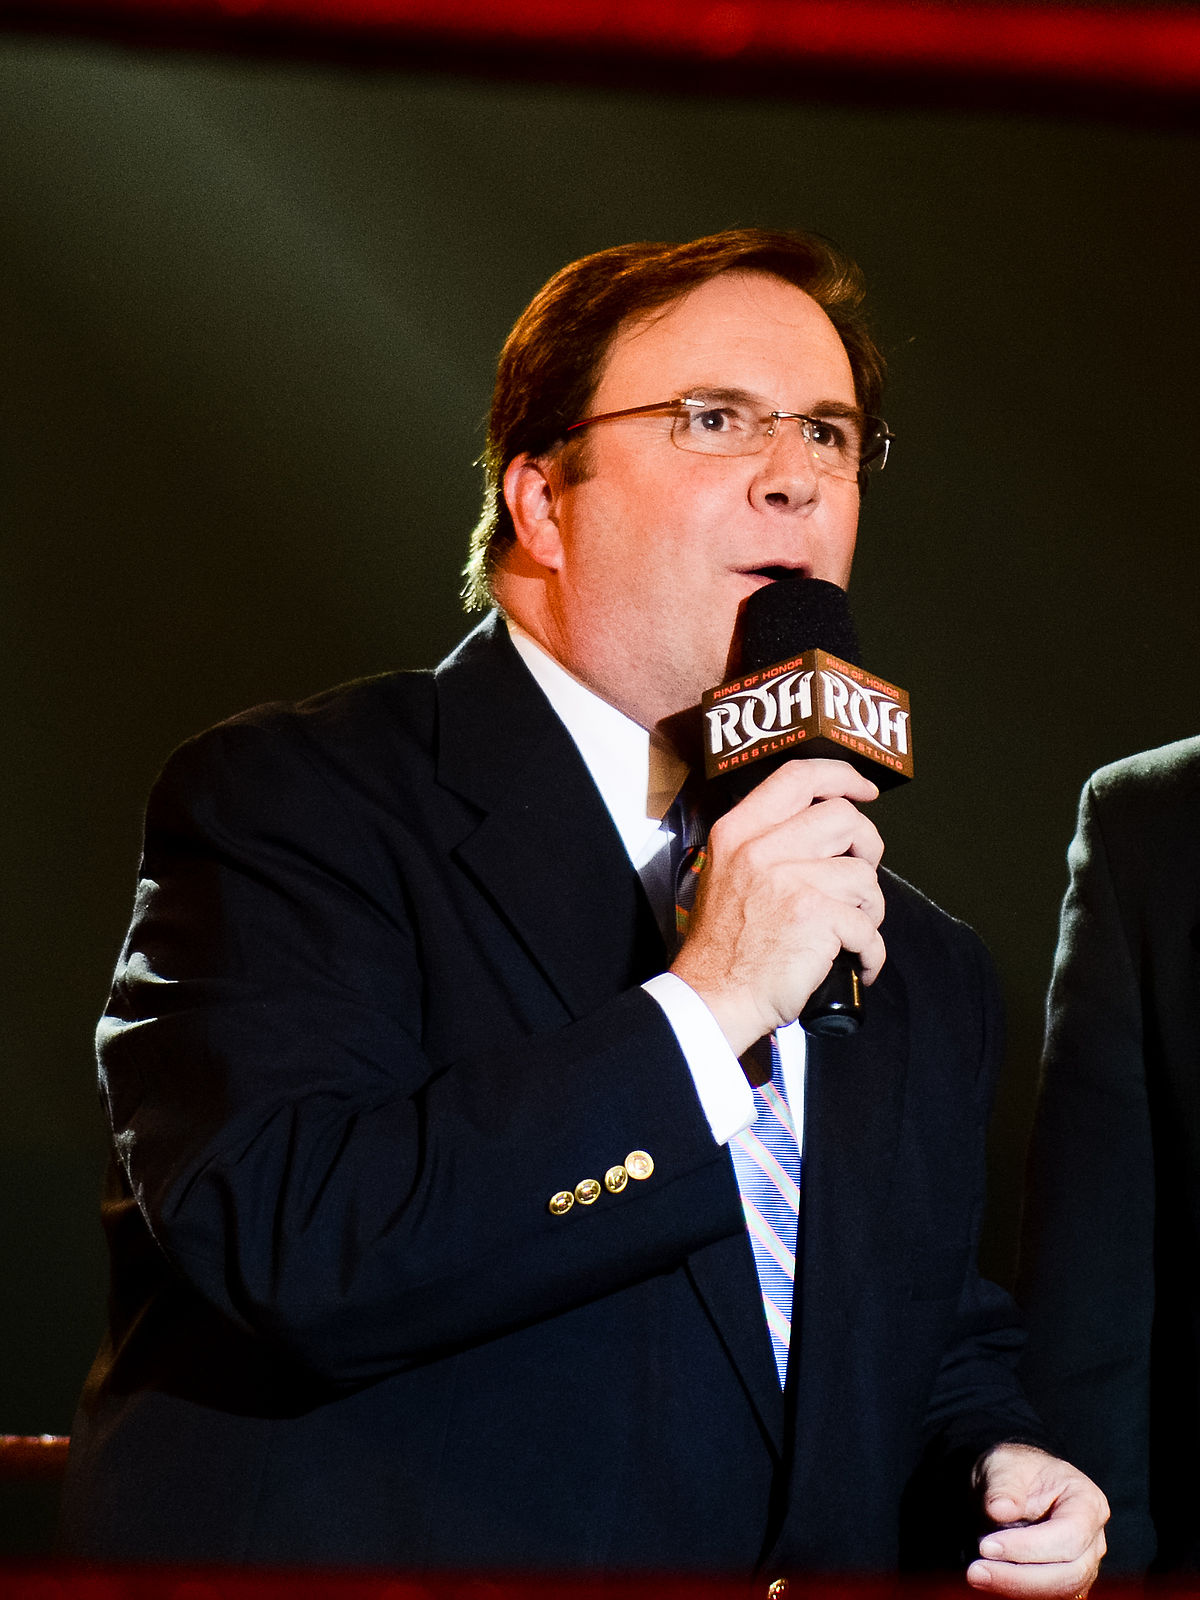 kevin kelly announcer wikipedia